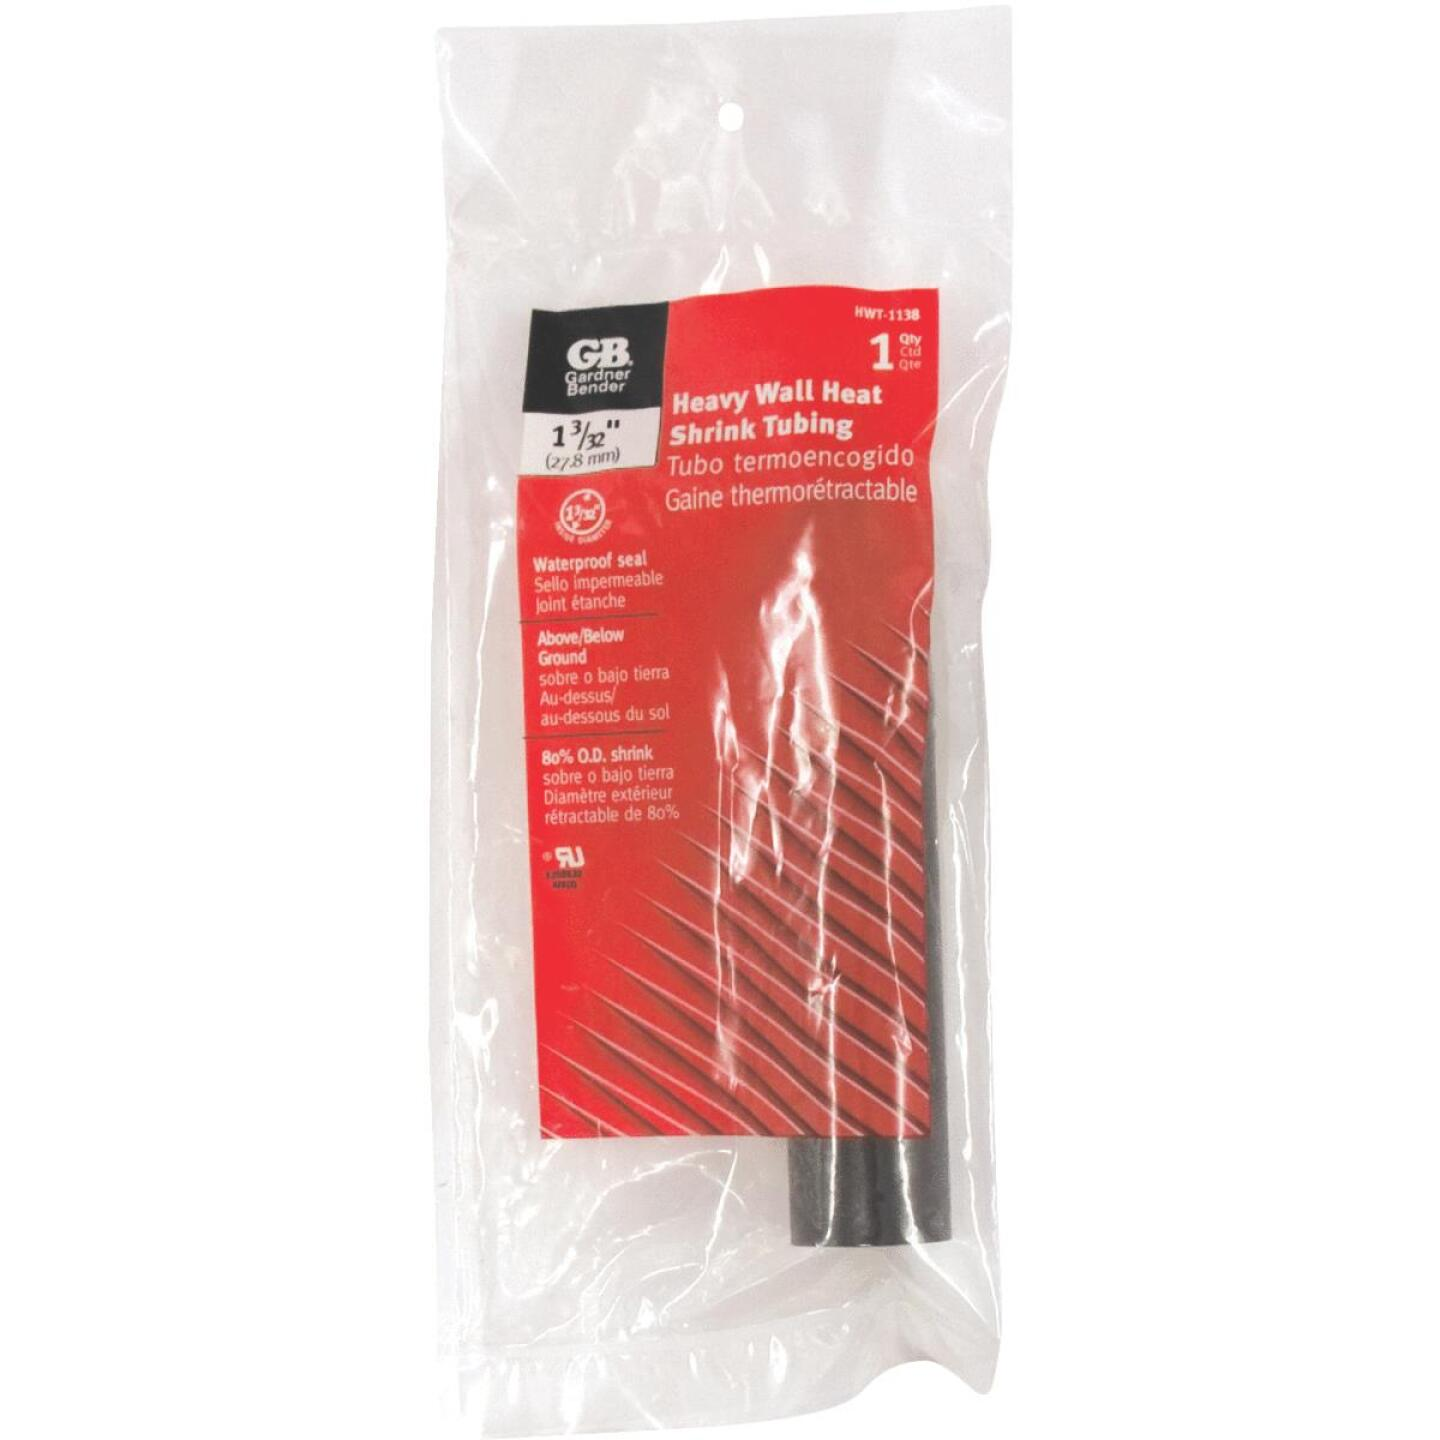 Gardner Bender Heavy-Wall 1-3/32 In. x 6 In. Heat Shrink Tubing Image 1